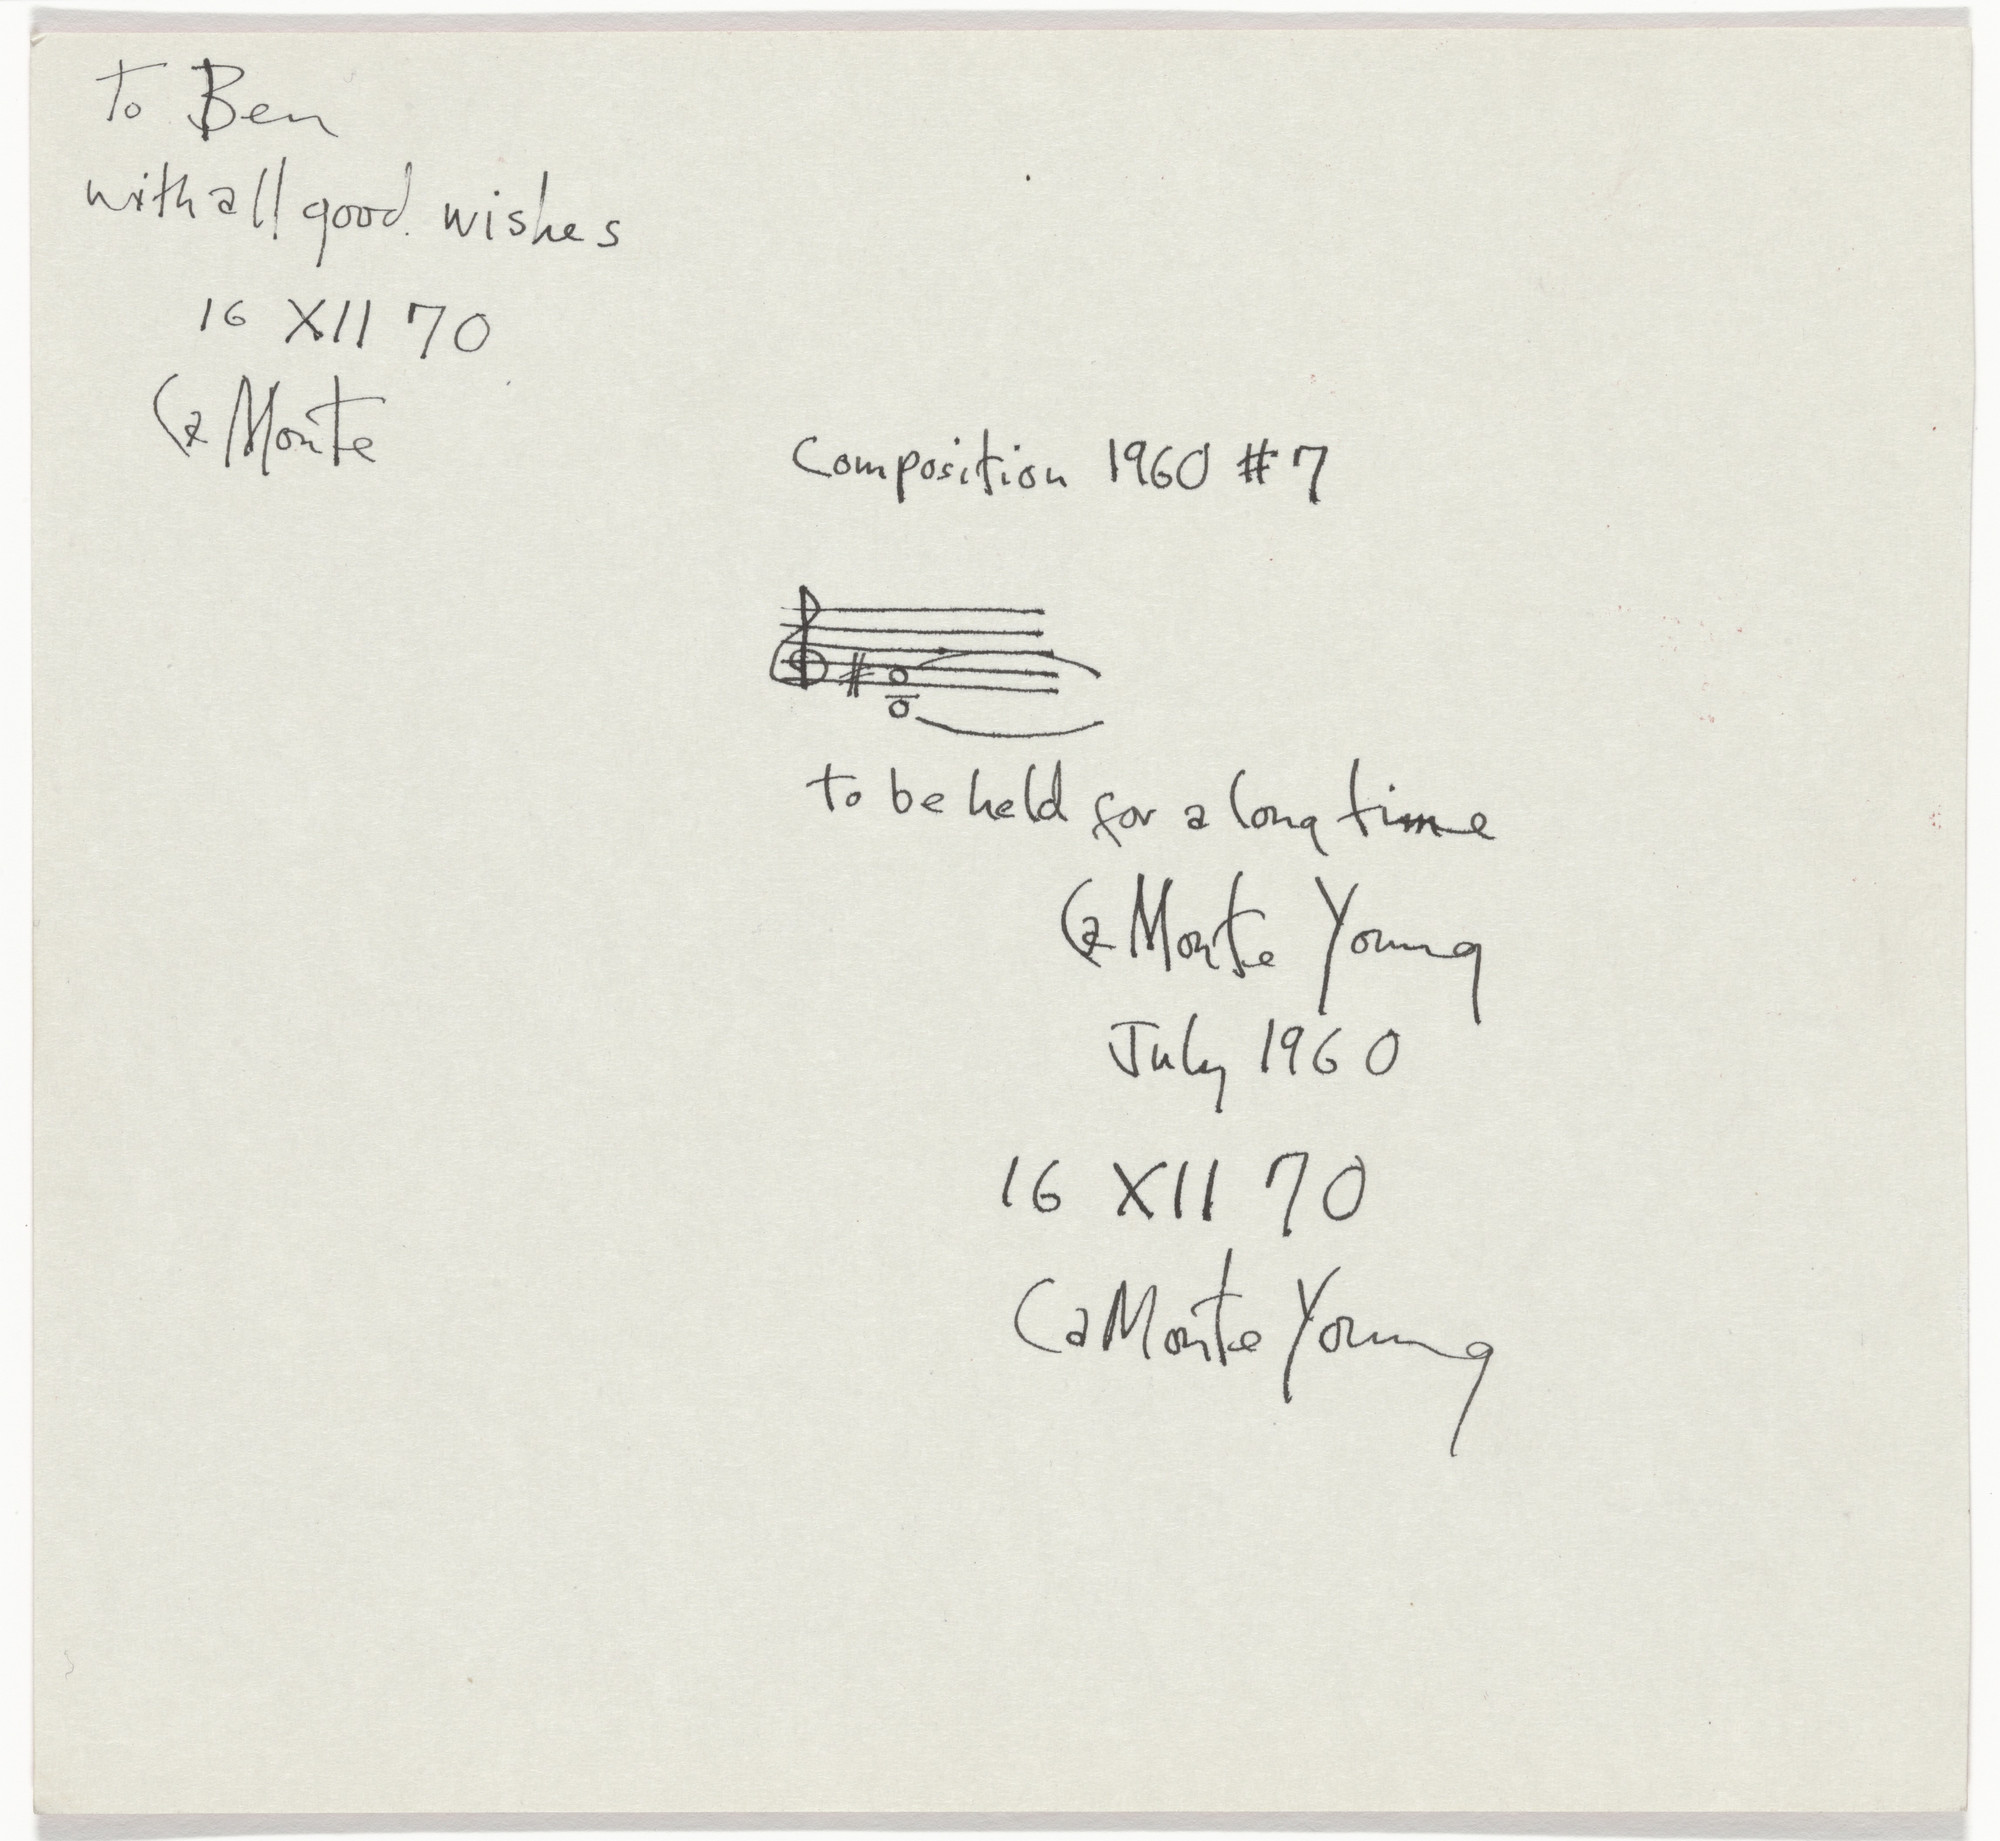 La Monte Young. Composition 1960 #7. 1960/1970